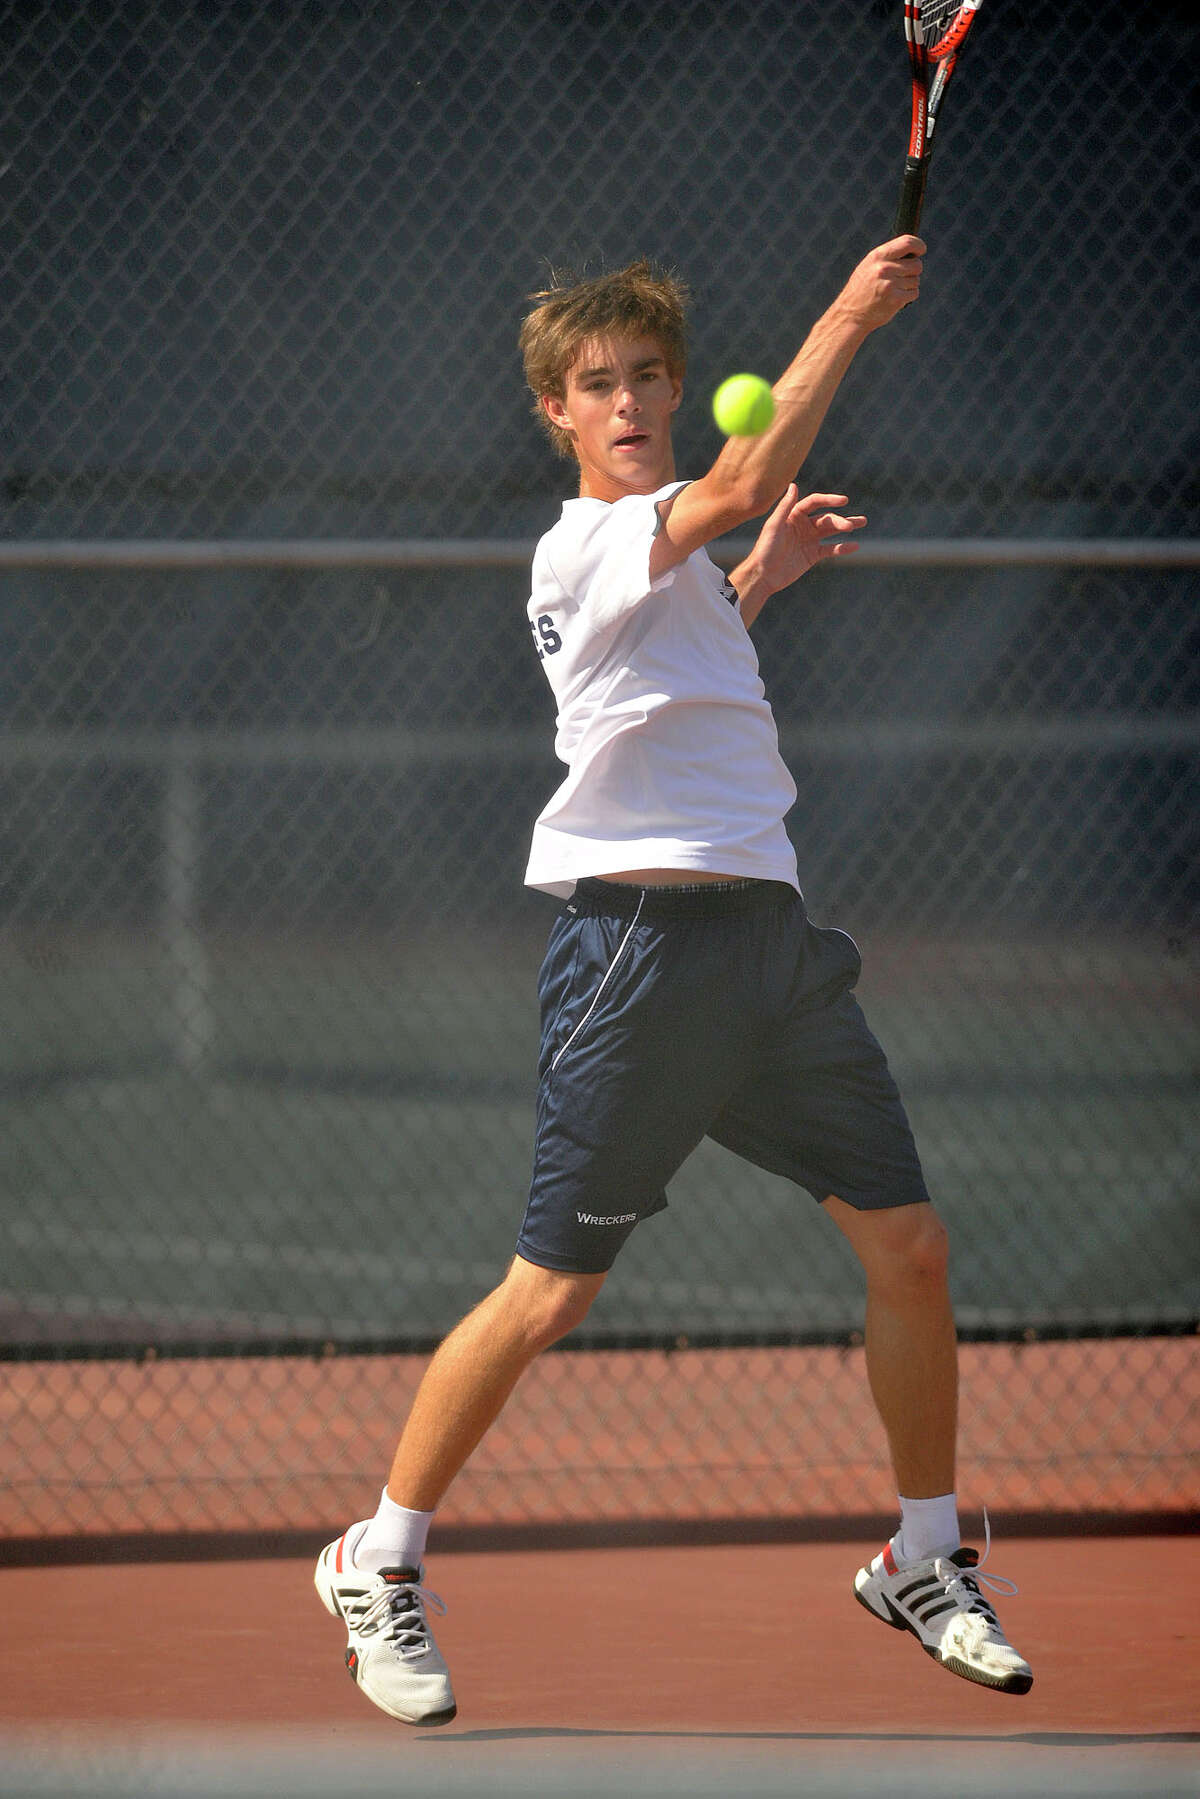 Staples' Luke Foreman advanced to the State Open final by defeating Ari Cepelewitz, of Greenwich 6-7, 7-6, 7-6 on Tuesday in the semifinals.